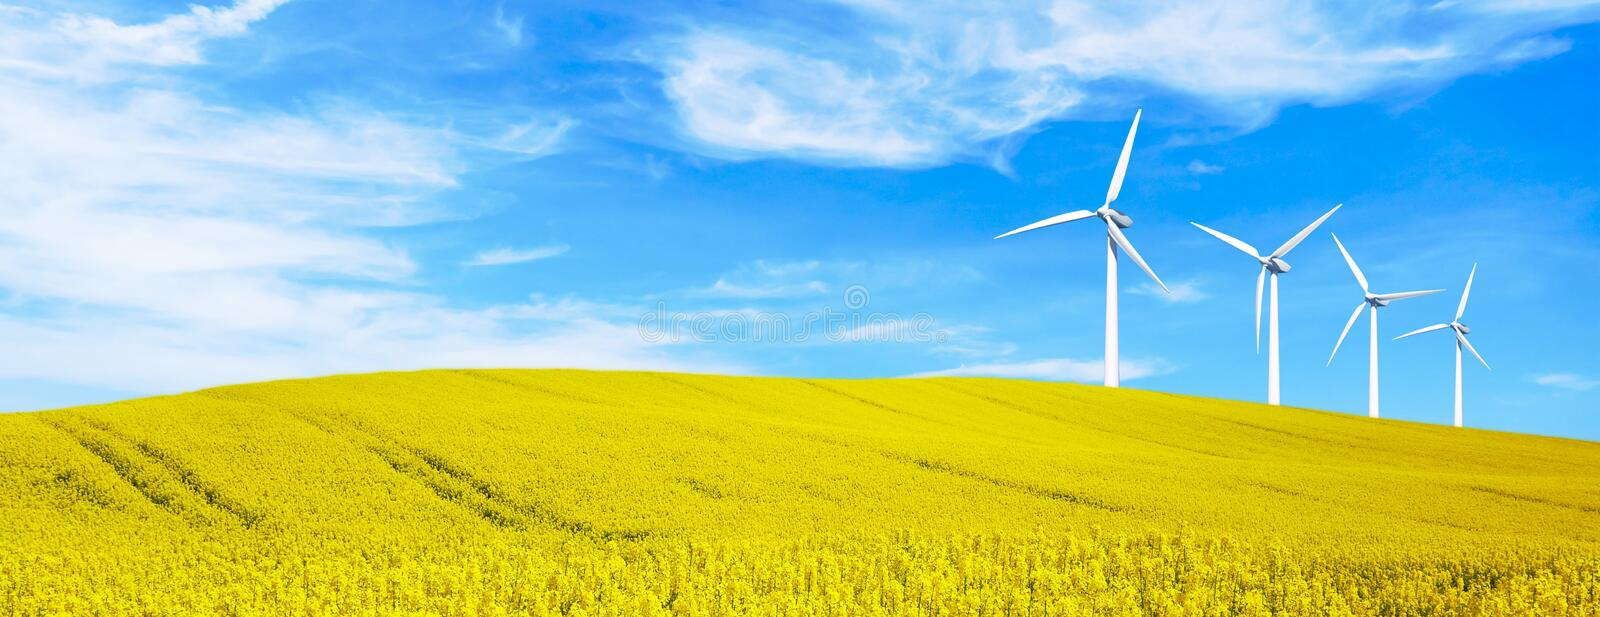 Renewable energy with wind turbines in yellow flowers hills. Ecology environmental background for presentations and websites. stock photography